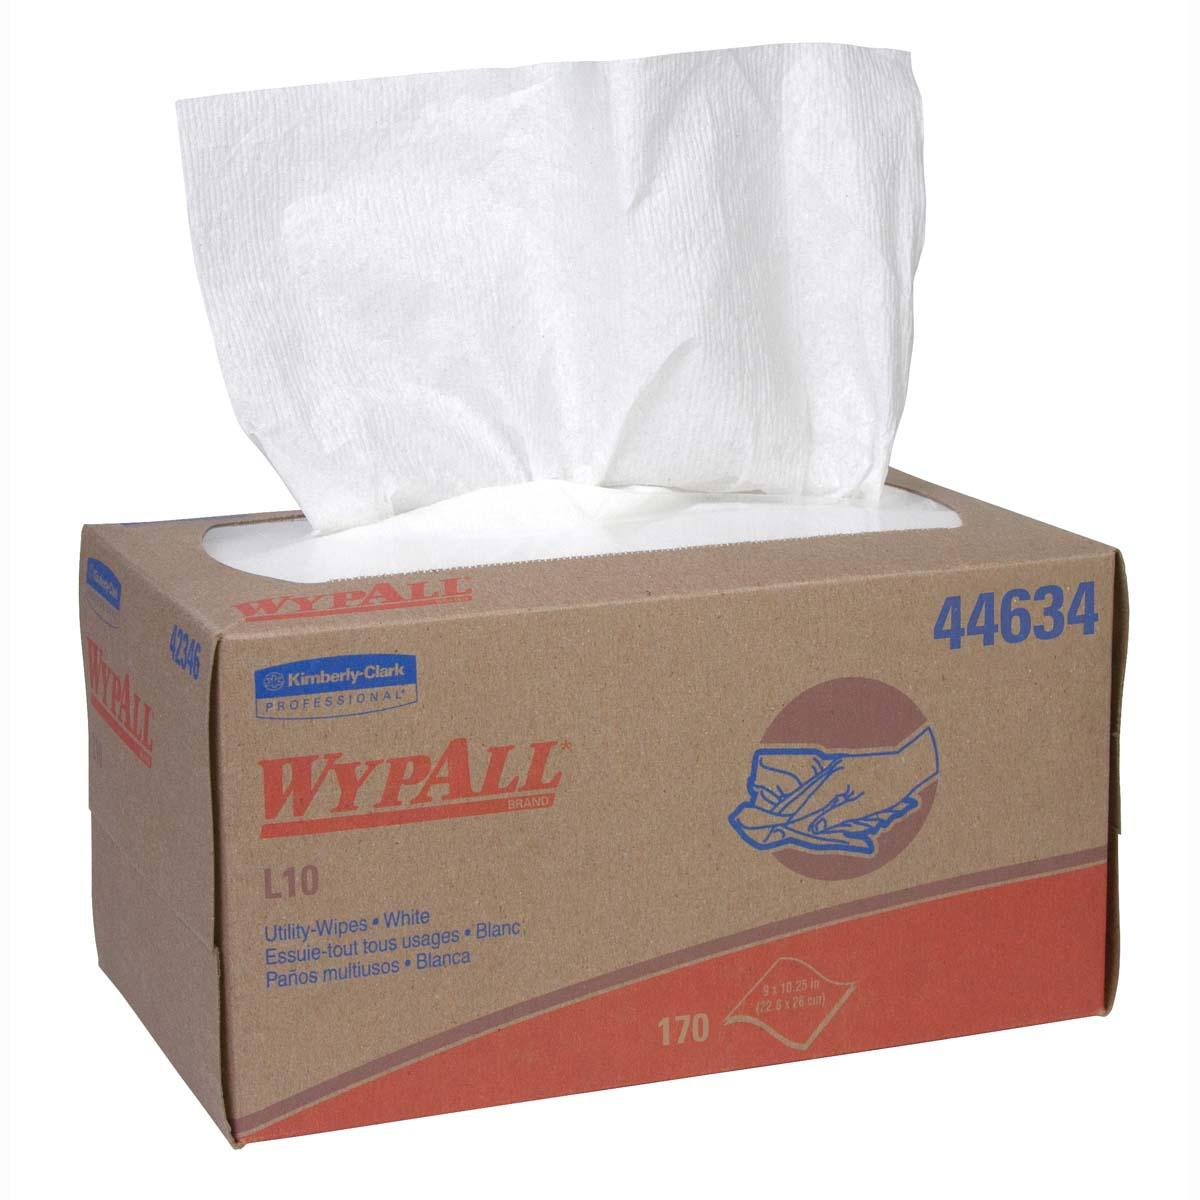 Wypall L10 Disposable Wipers (44634), Limited Use / Lightweight, 1-PLY, Pop-Up Box, White, 24 Boxes / Case, 170 Wipes / Box